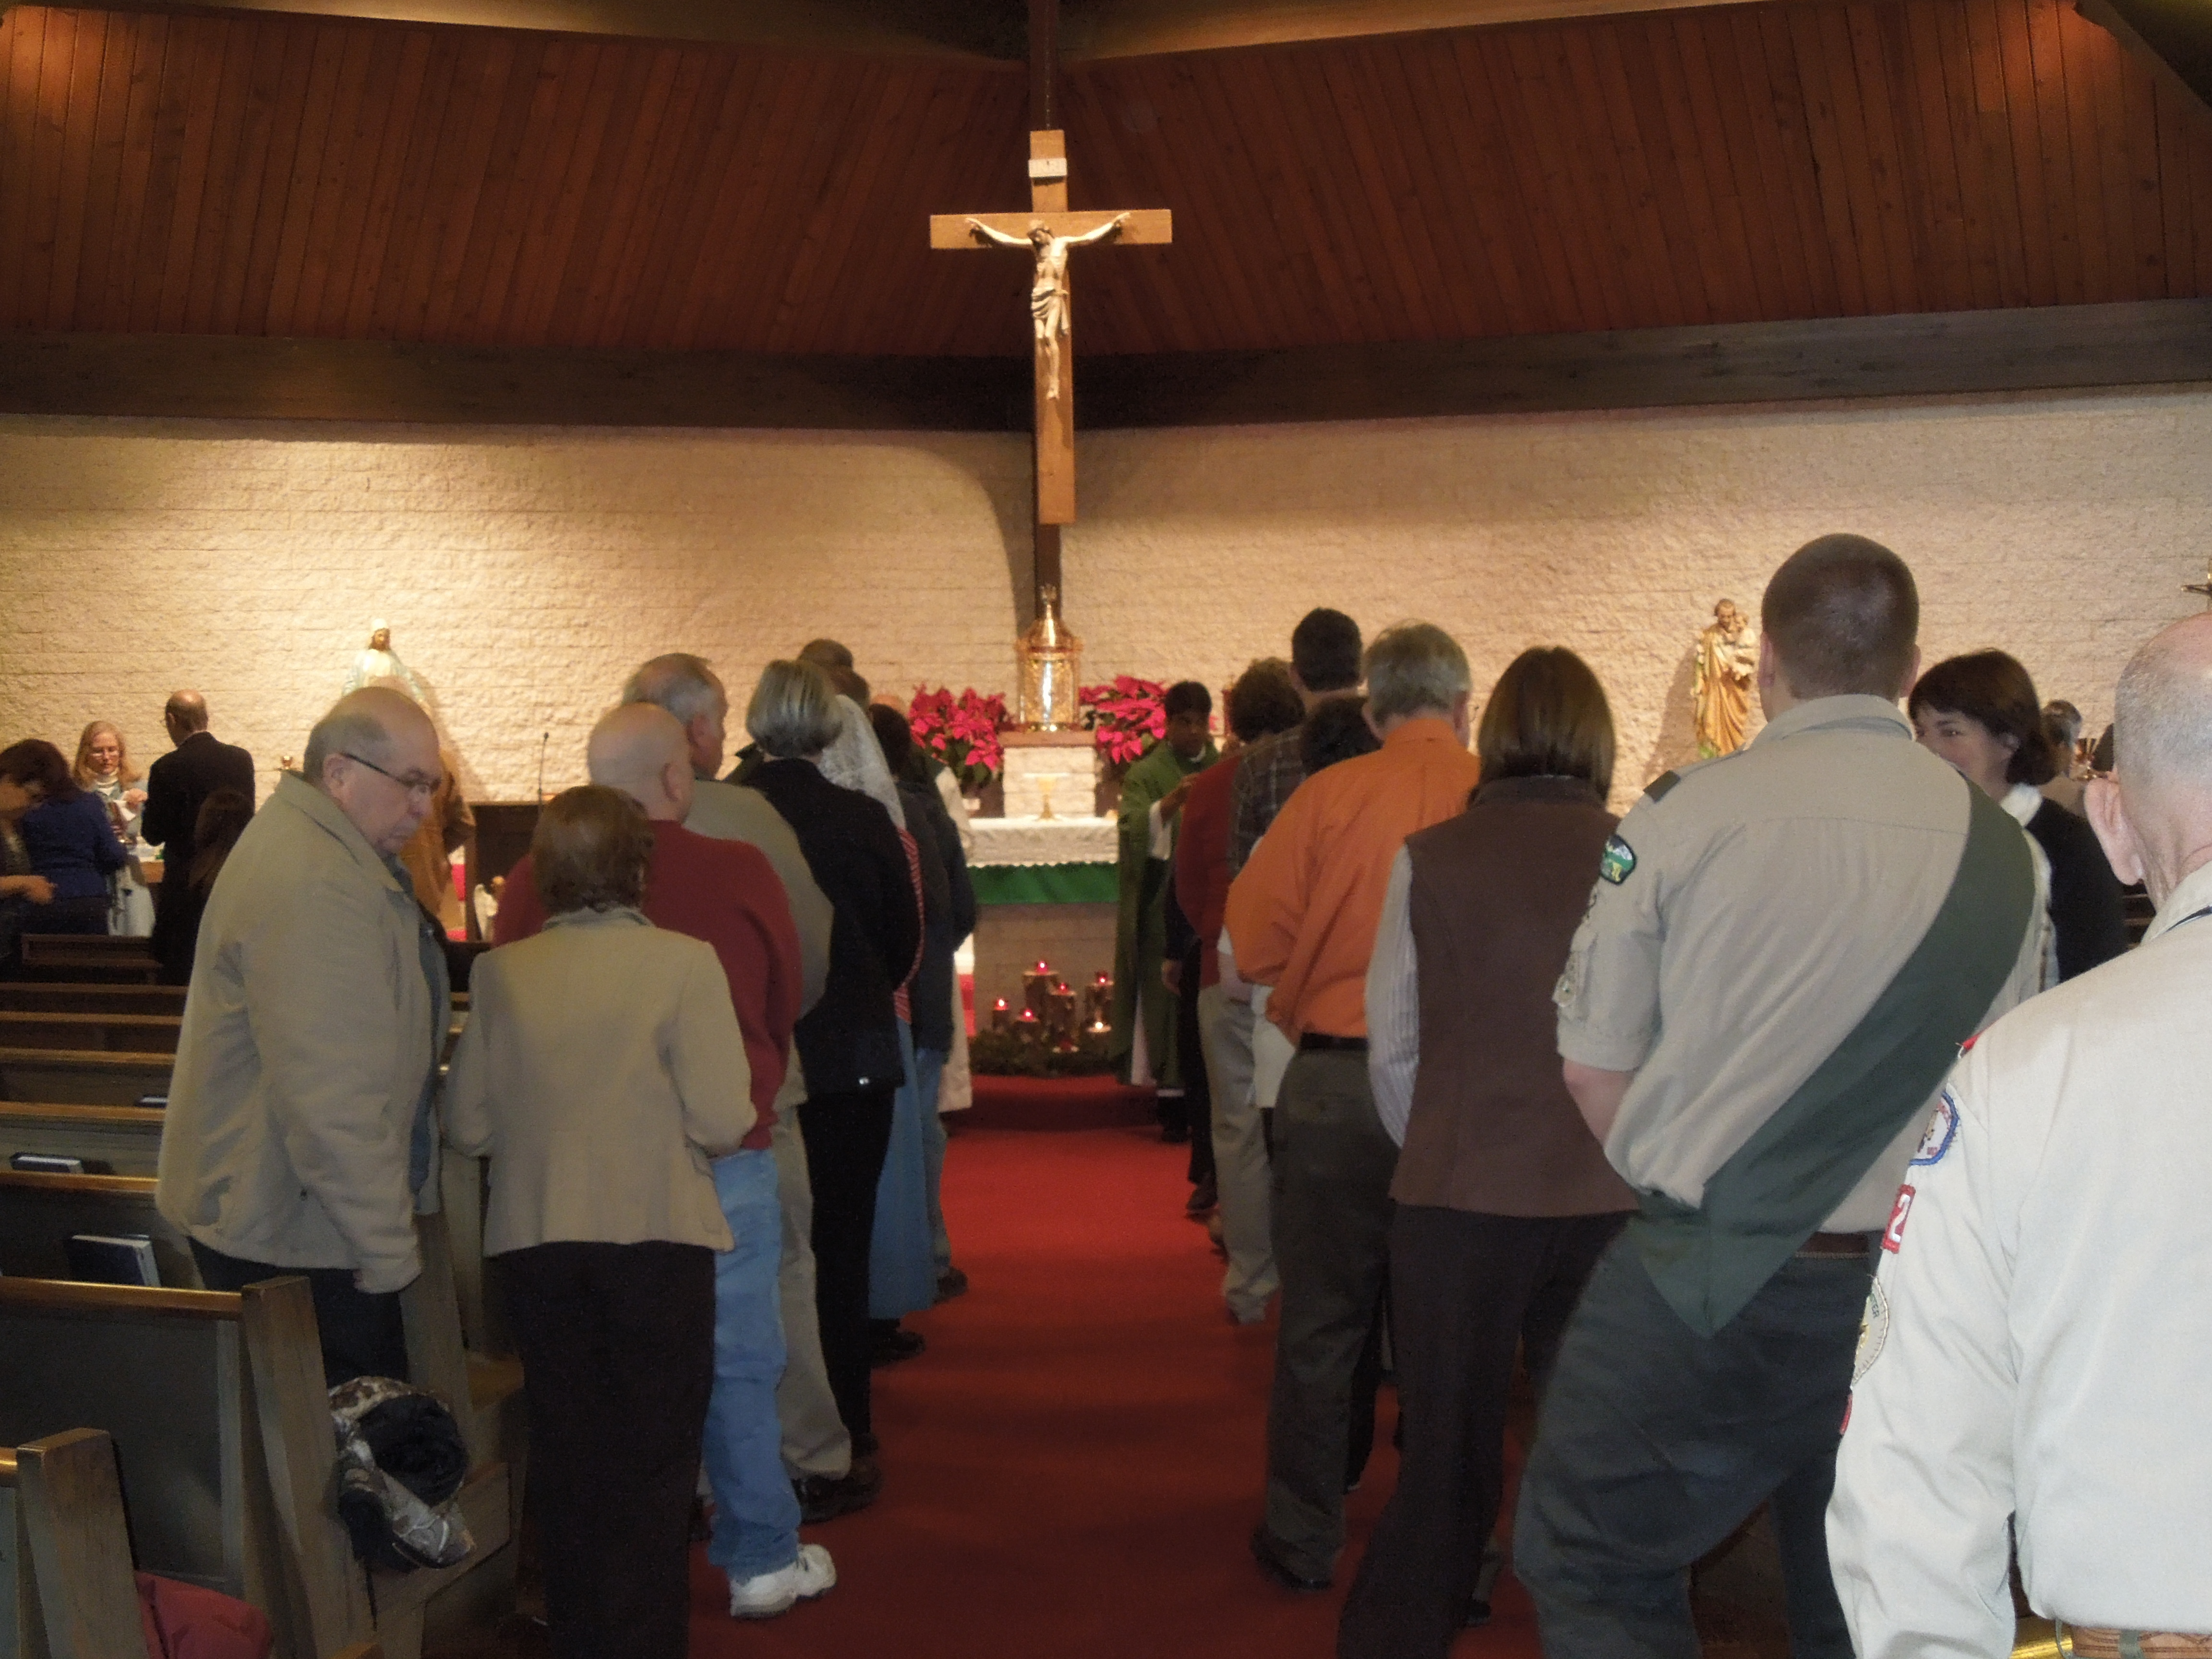 Congregation at the Eucharist